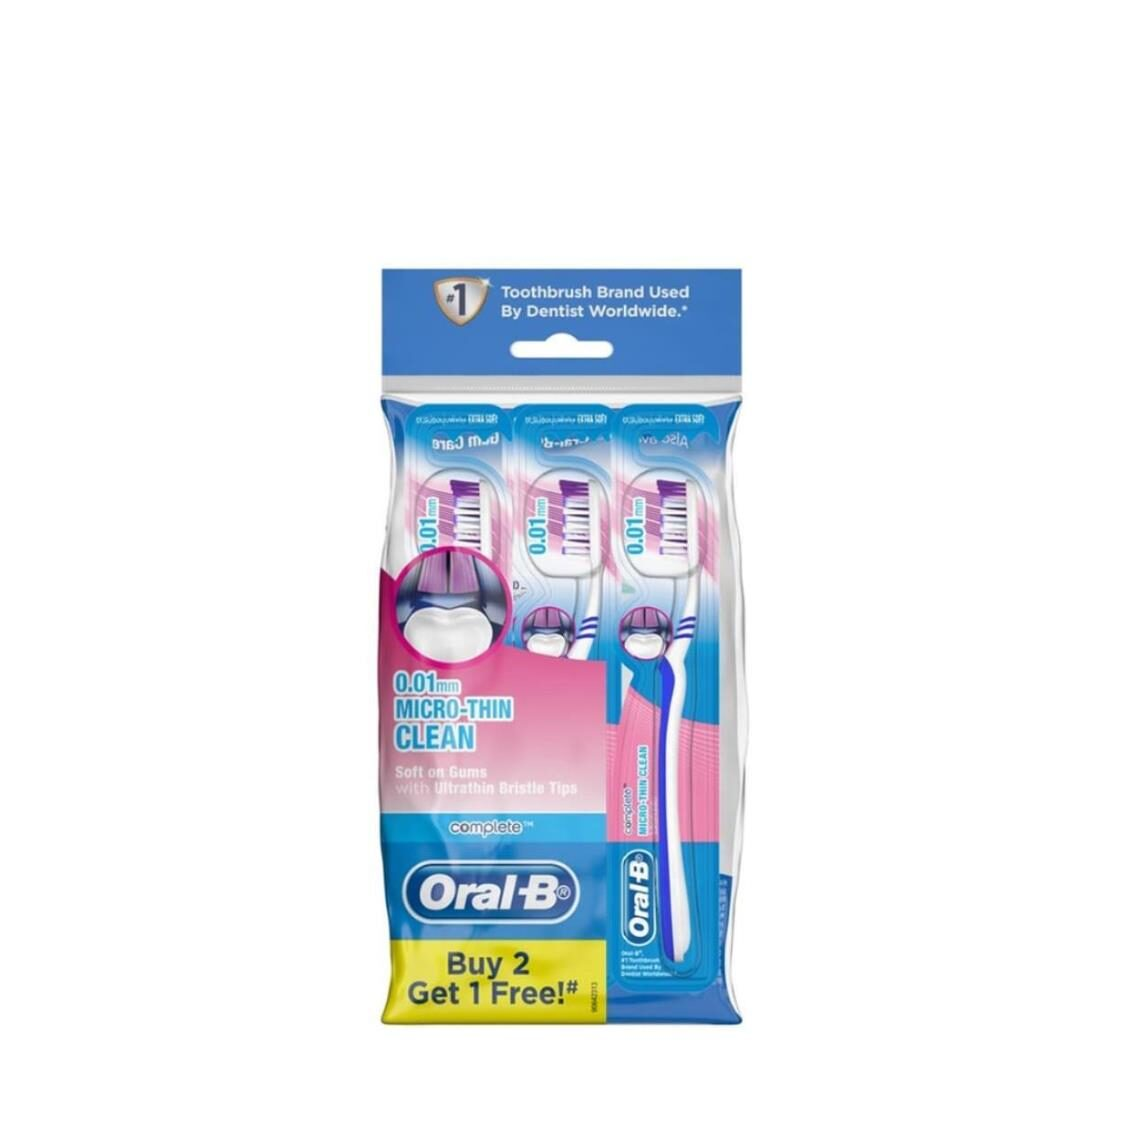 Oral B Complete Micro-Thin Clean Manual Toothbrush 3 Pack PolyBag